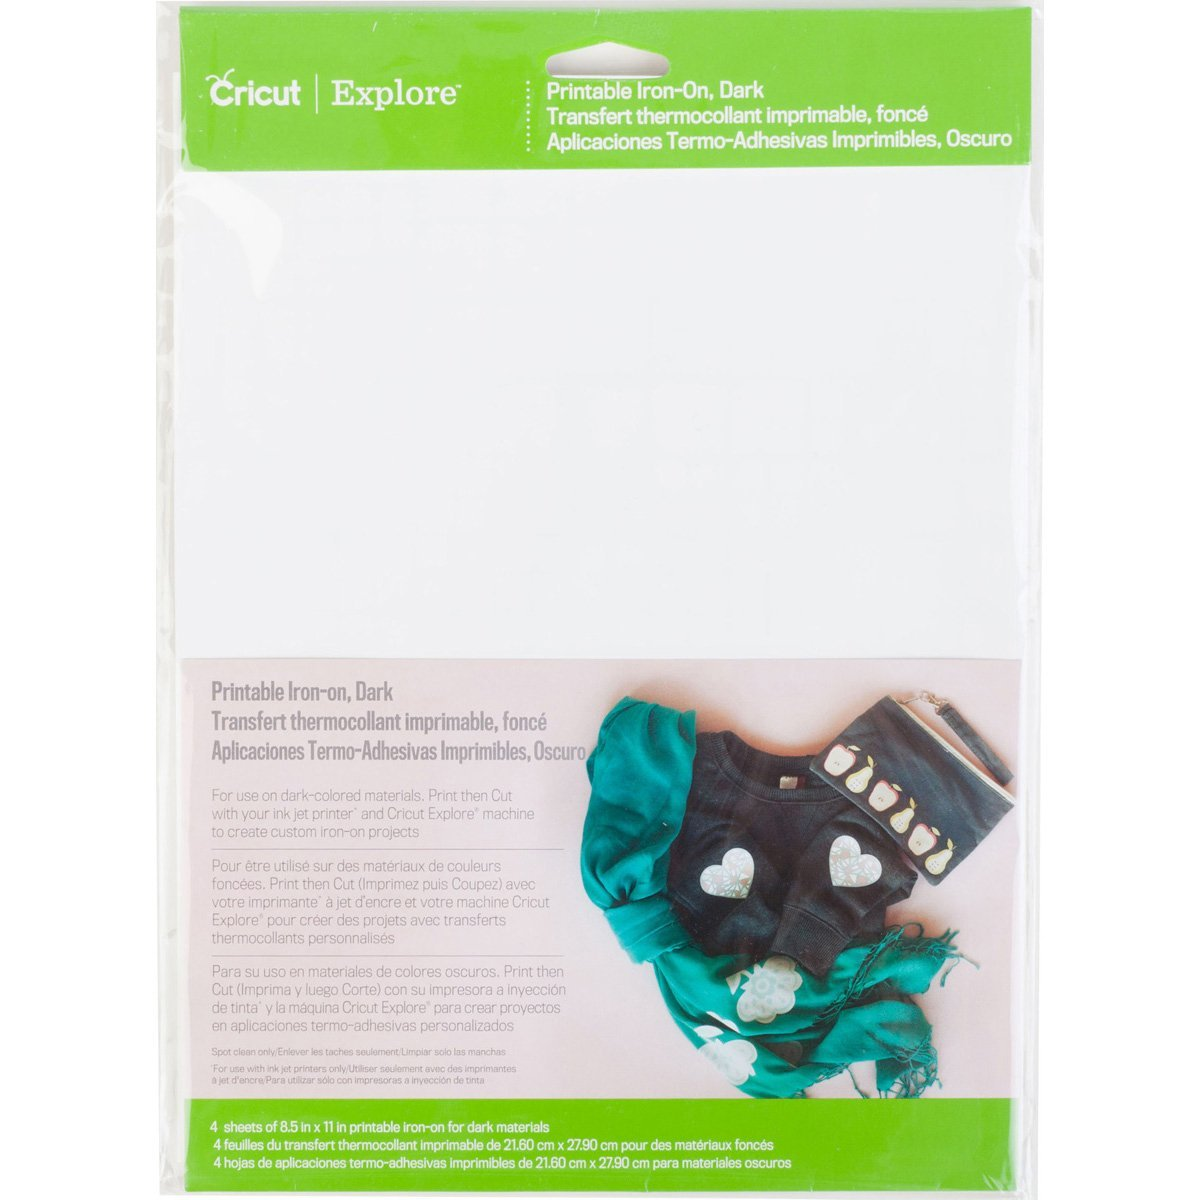 Cricut 2002745 Printable Iron-On for Scrapbooking, Dark